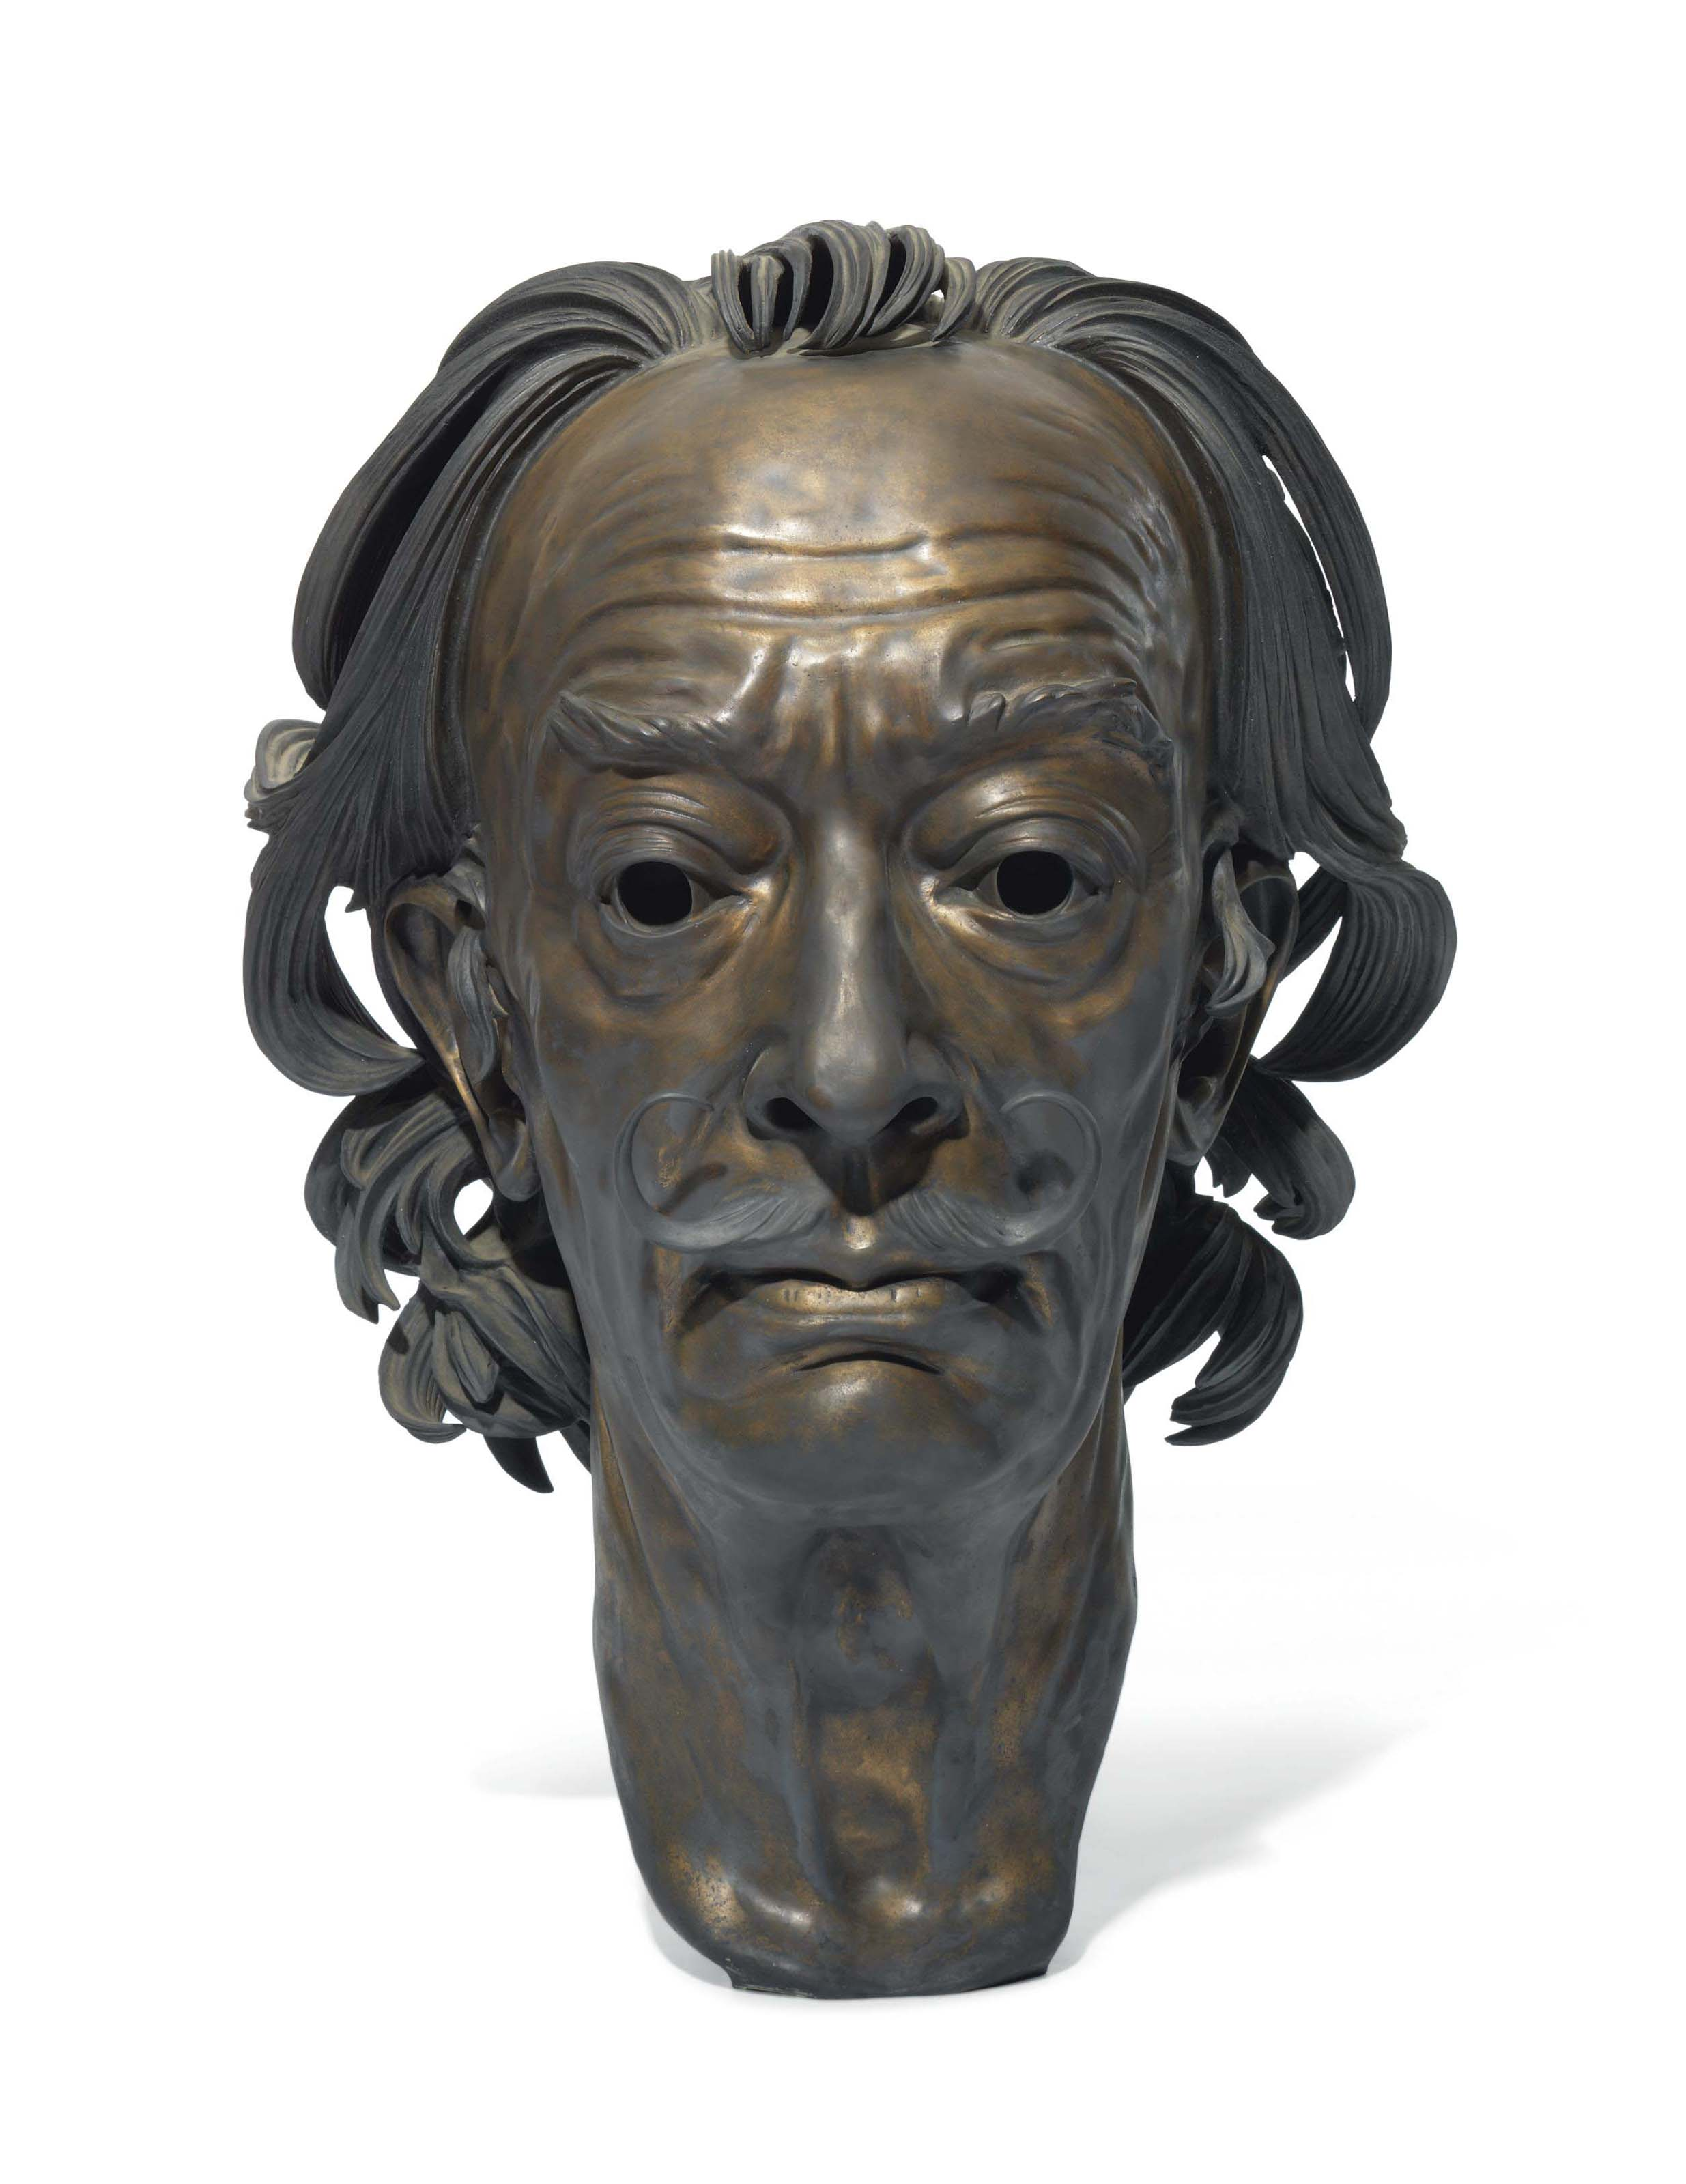 Portrait bust of Salvador Dalí